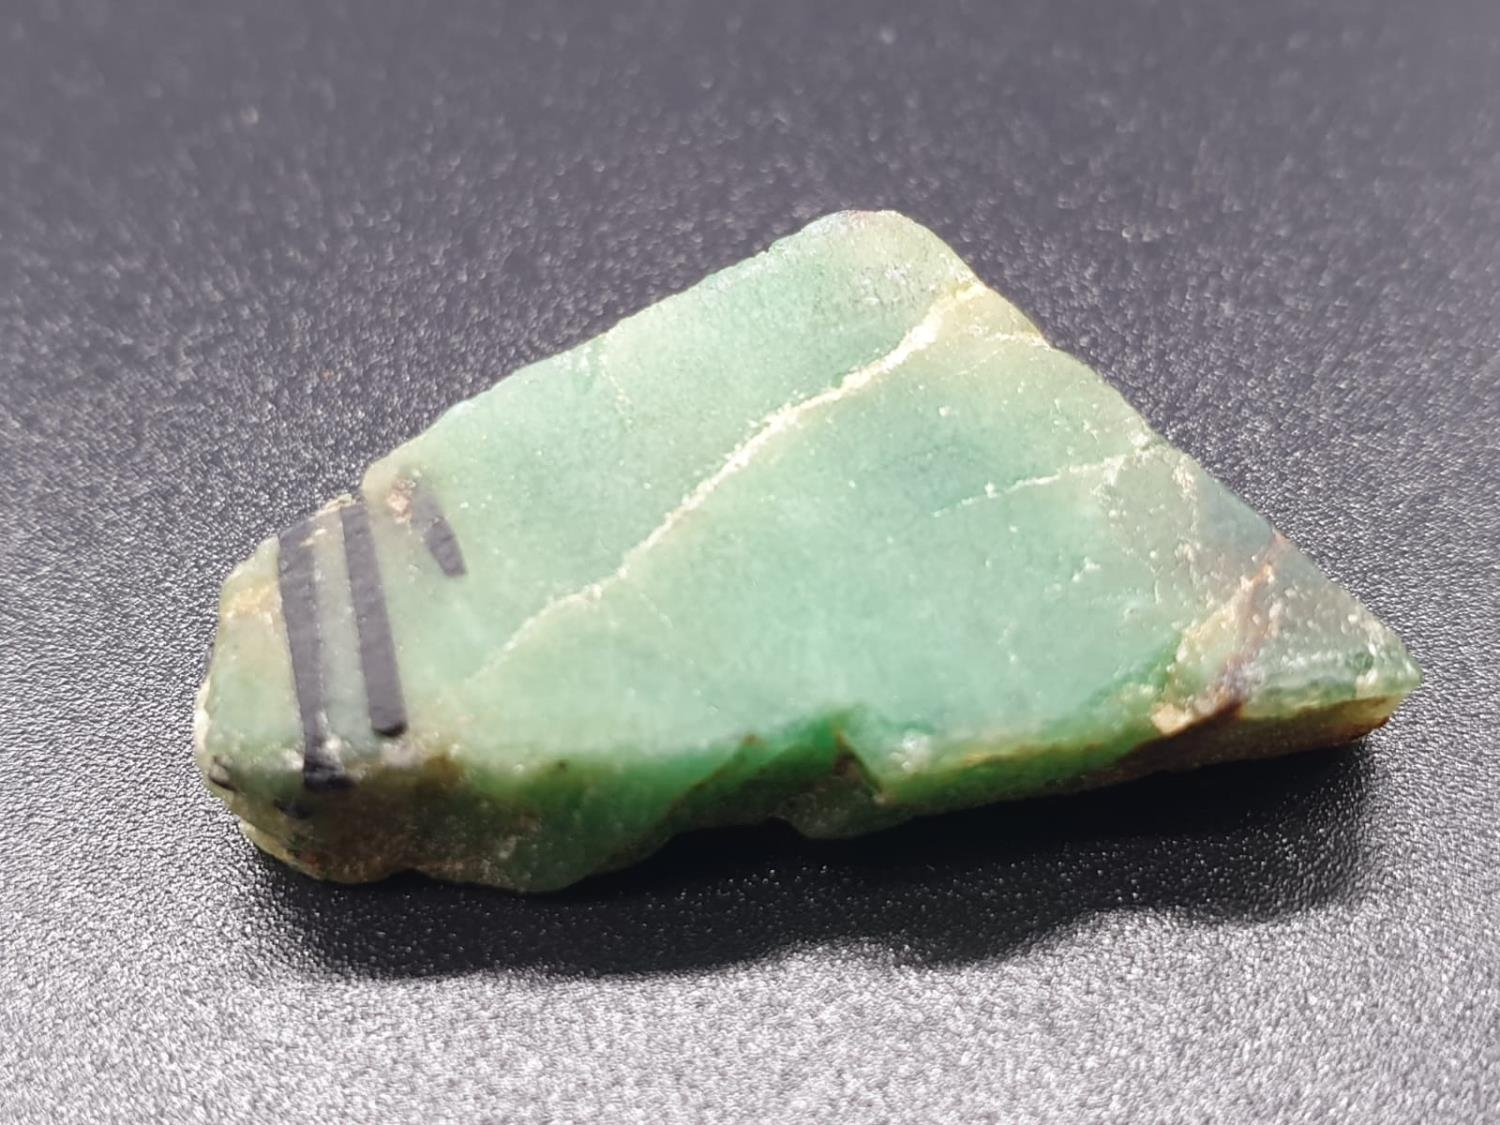 27.79 Ct Natural Emerald. Rough shape. IDT certified - Image 2 of 6